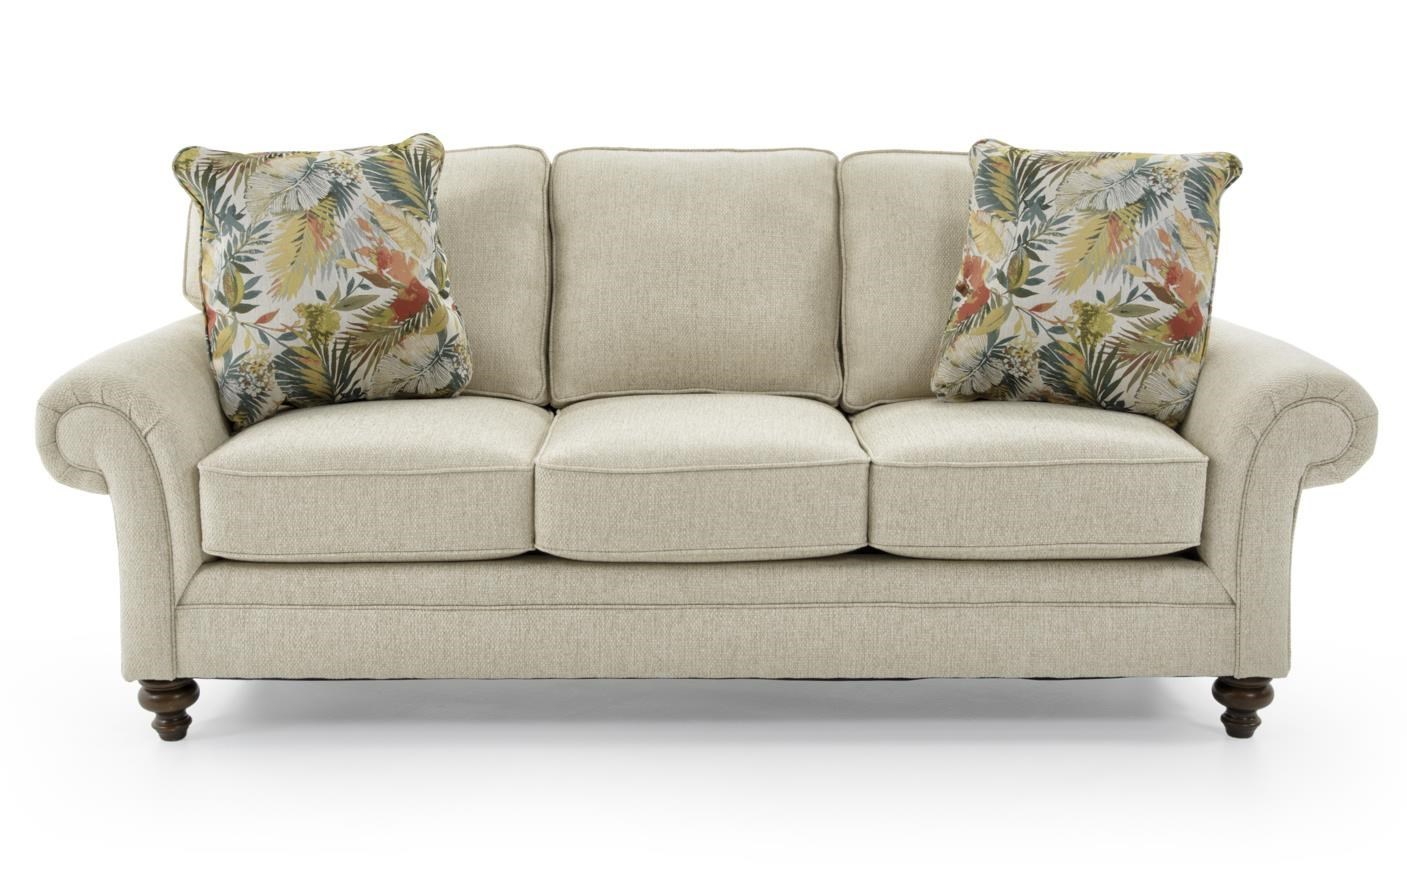 Broyhill Furniture LarissaUpholstered Sofa ...